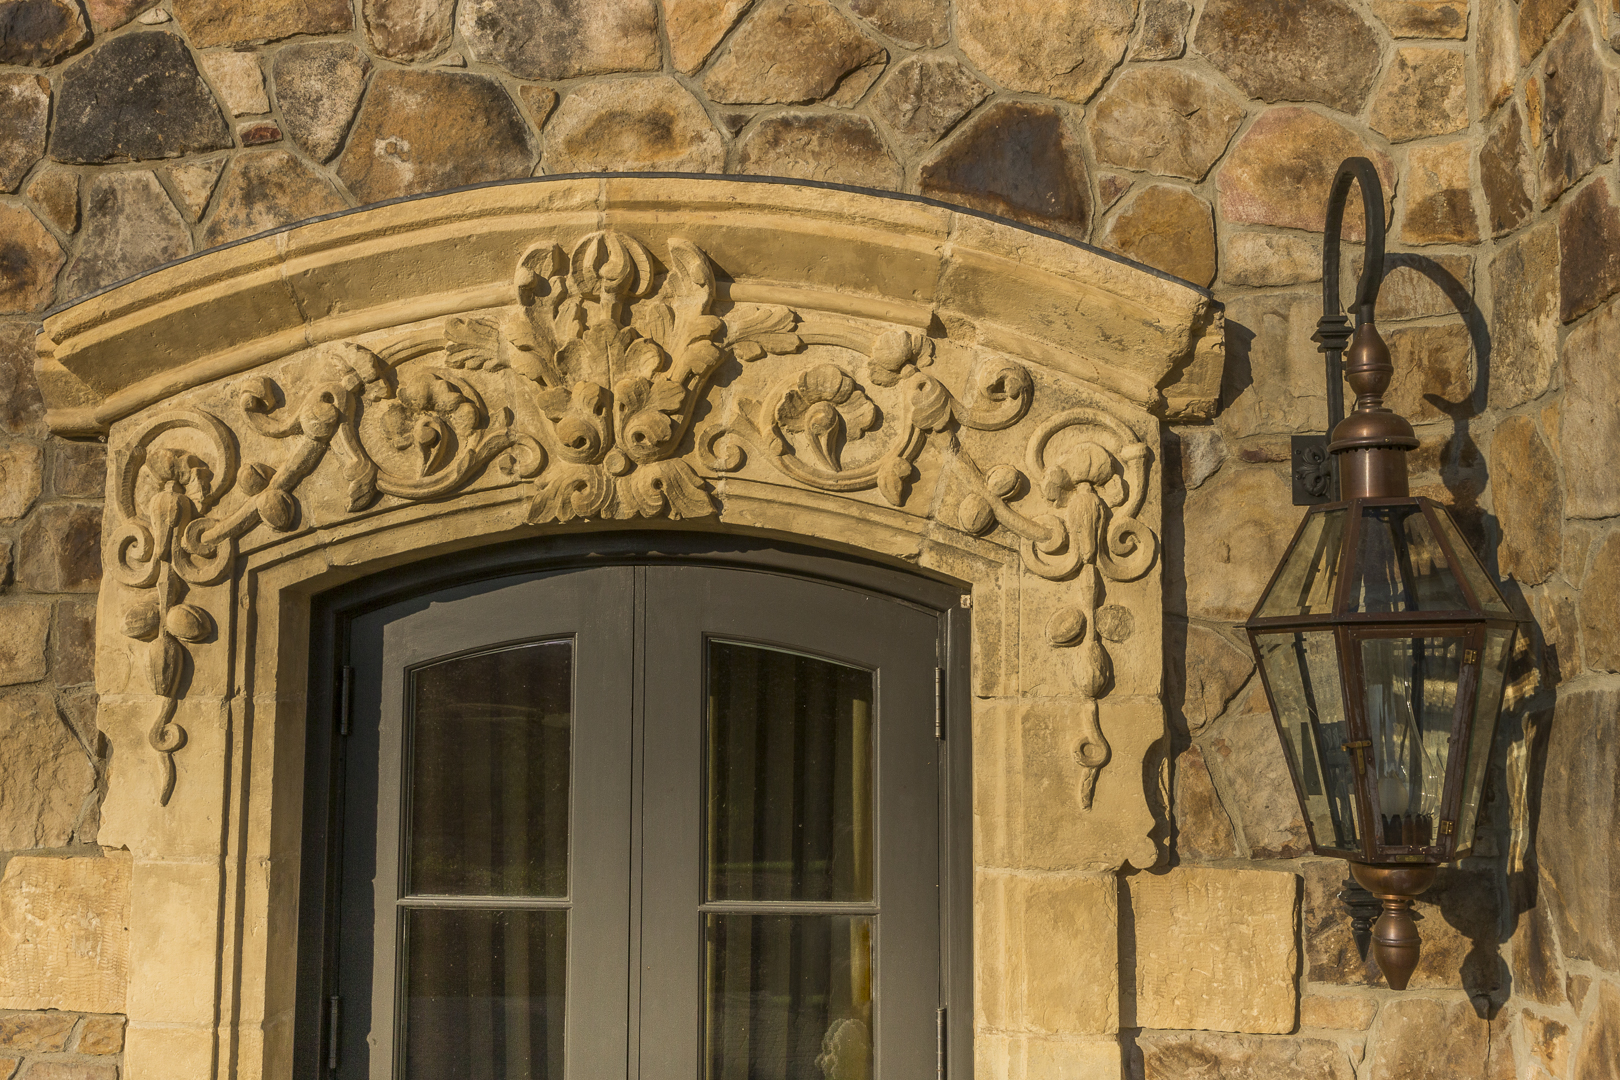 Golden_130816_0747_9405-Edit.jpg